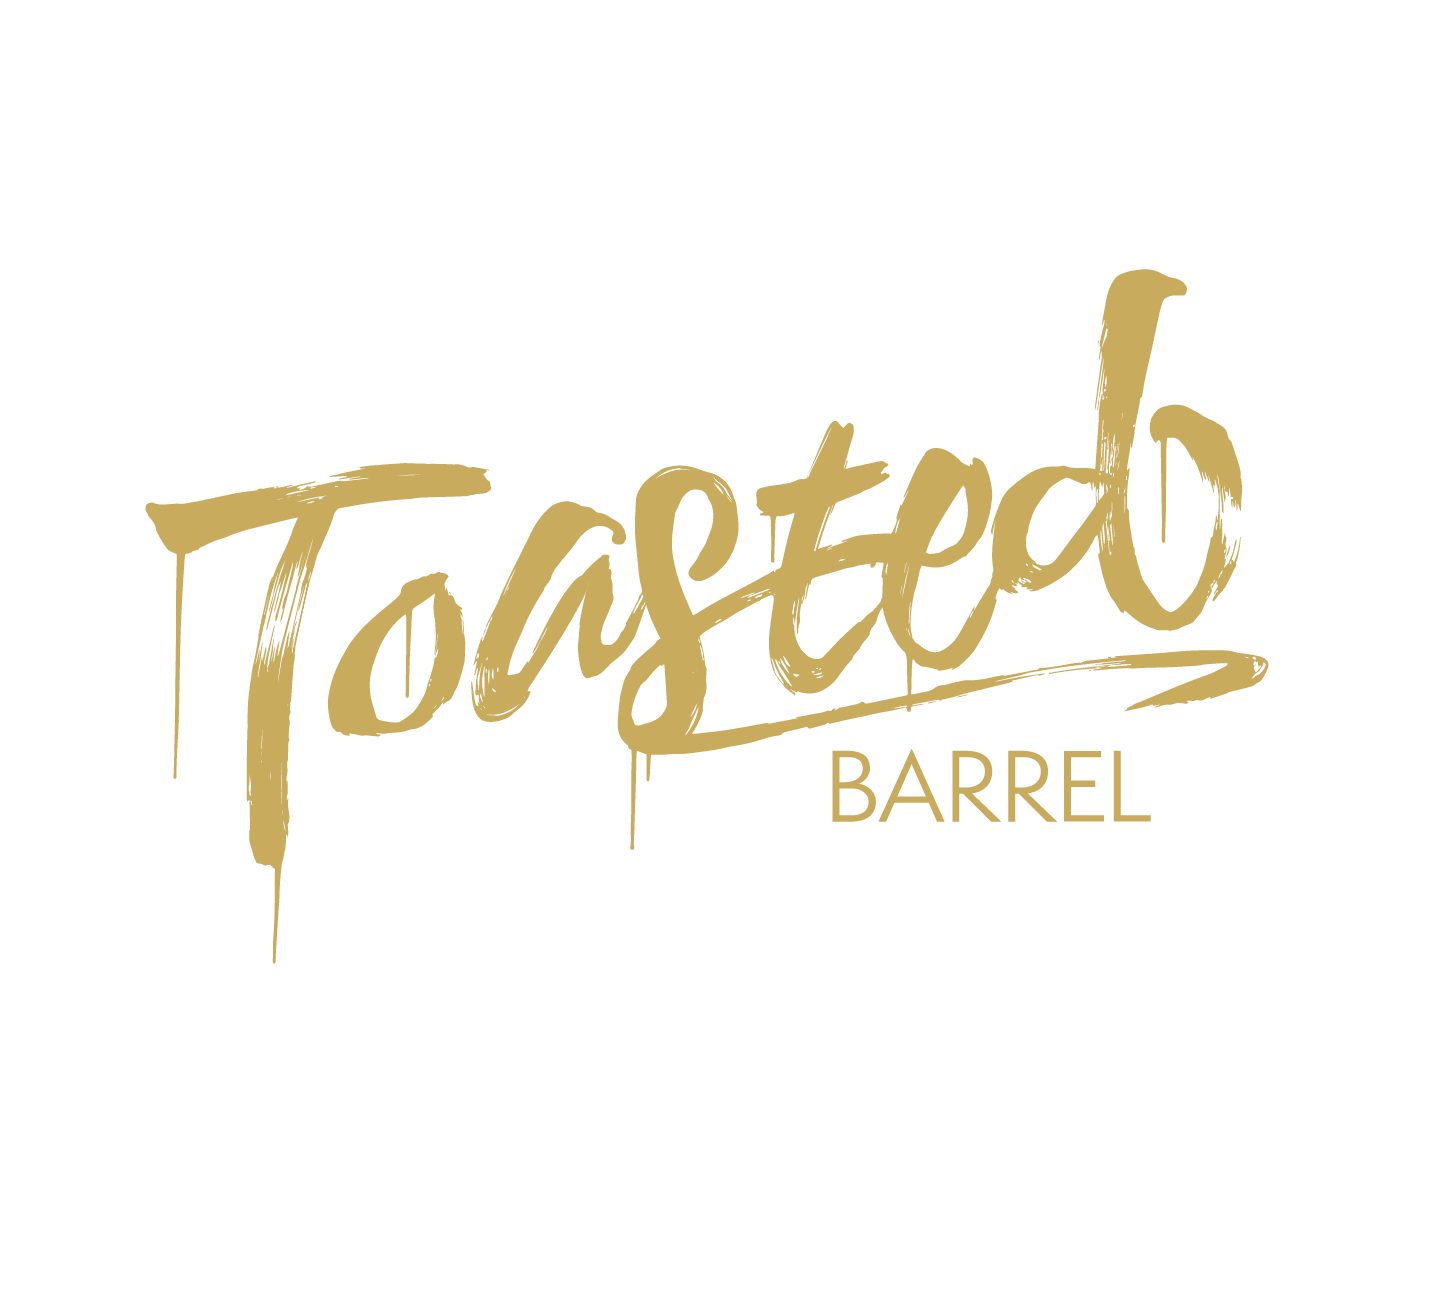 TOASTED BARREL - WHO. . . . Intimate bar + outdoor cafe serving grilled cheese, craft beers, & signature cocktailsWHERE . . 150 Montgomery St., Savannah, GAWHAT . . . Serving Auspicious breads within their restaurant offerings